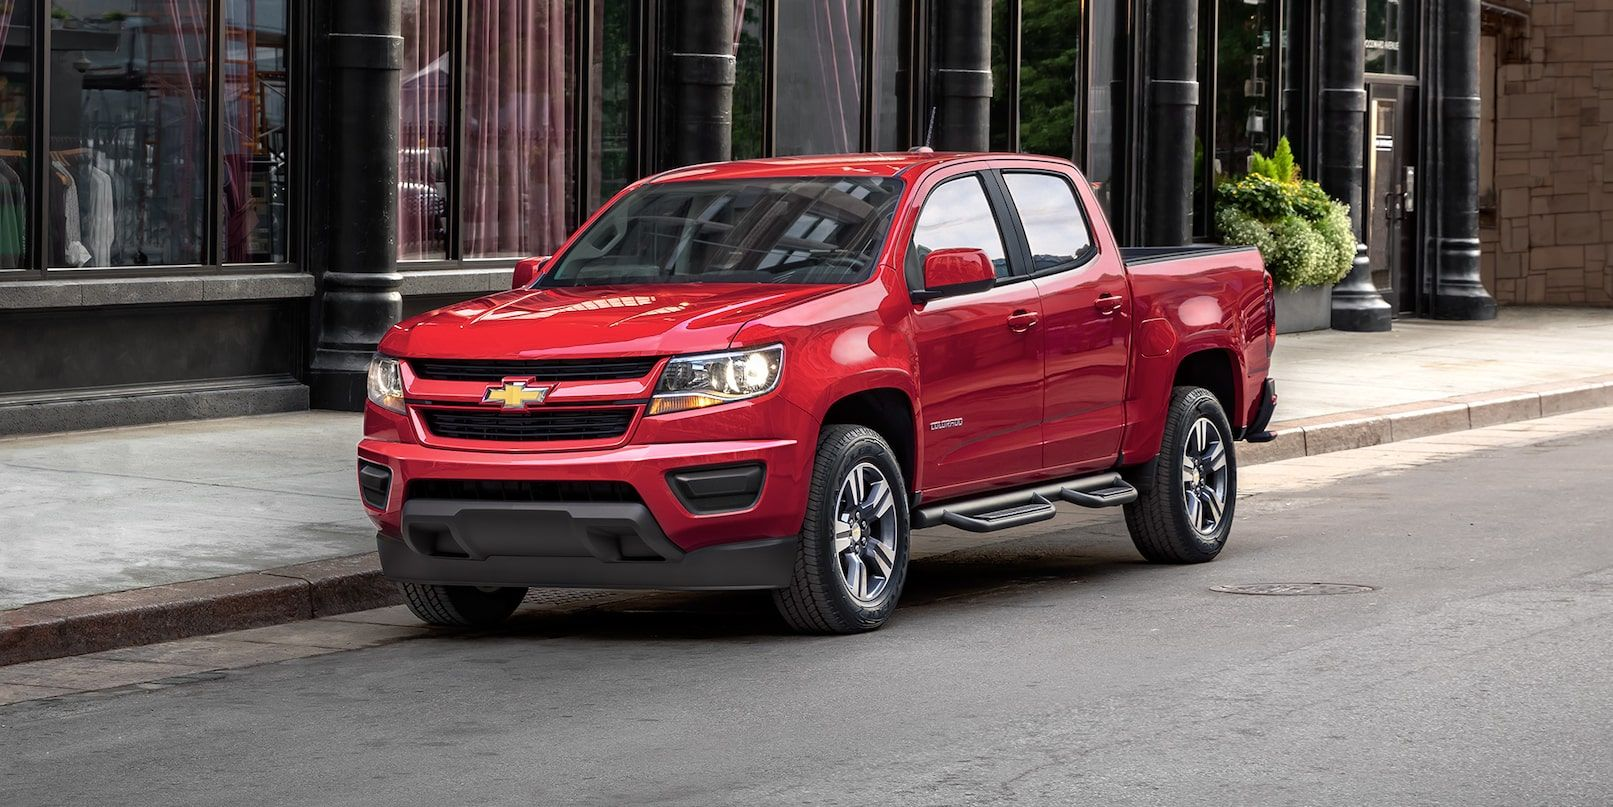 2019 Chevrolet Colorado Mid Size Pickup Truck Chevrolet Canada Autos Fun